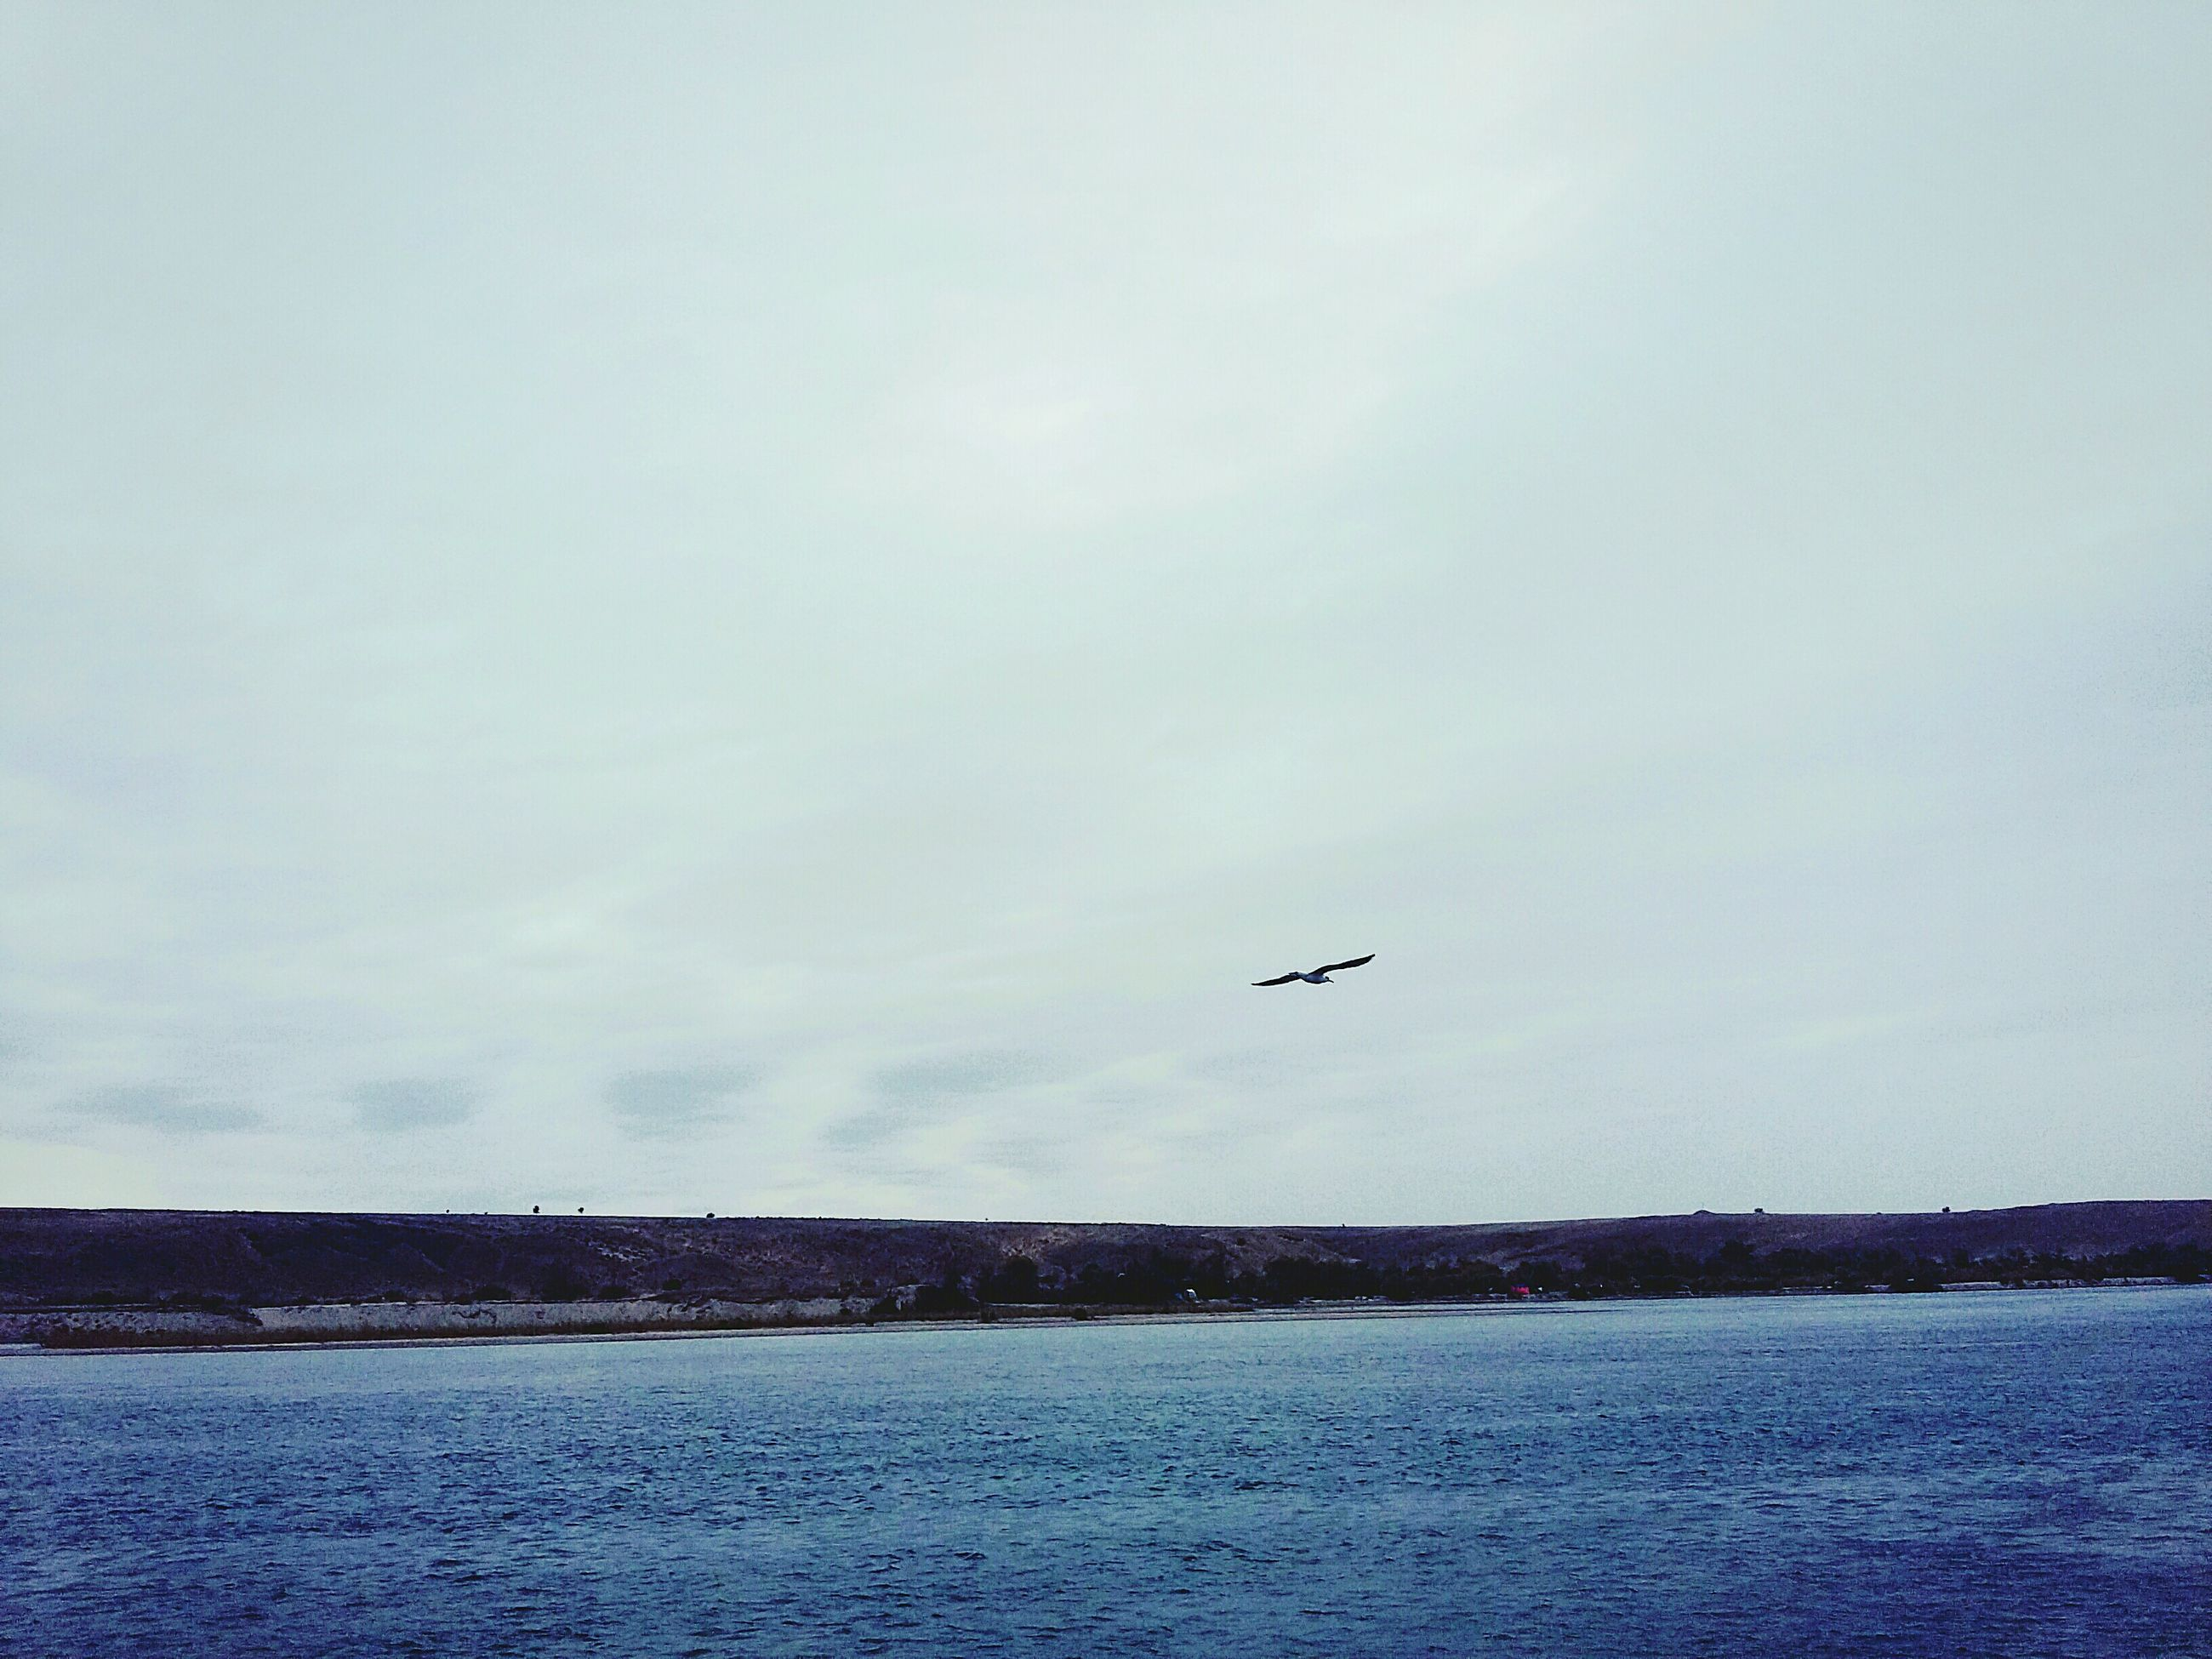 water, bird, flying, sea, scenics, tranquil scene, tranquility, animal themes, waterfront, sky, beauty in nature, nature, day, cloud, calm, outdoors, seascape, water surface, no people, ocean, remote, cloud - sky, coastline, non-urban scene